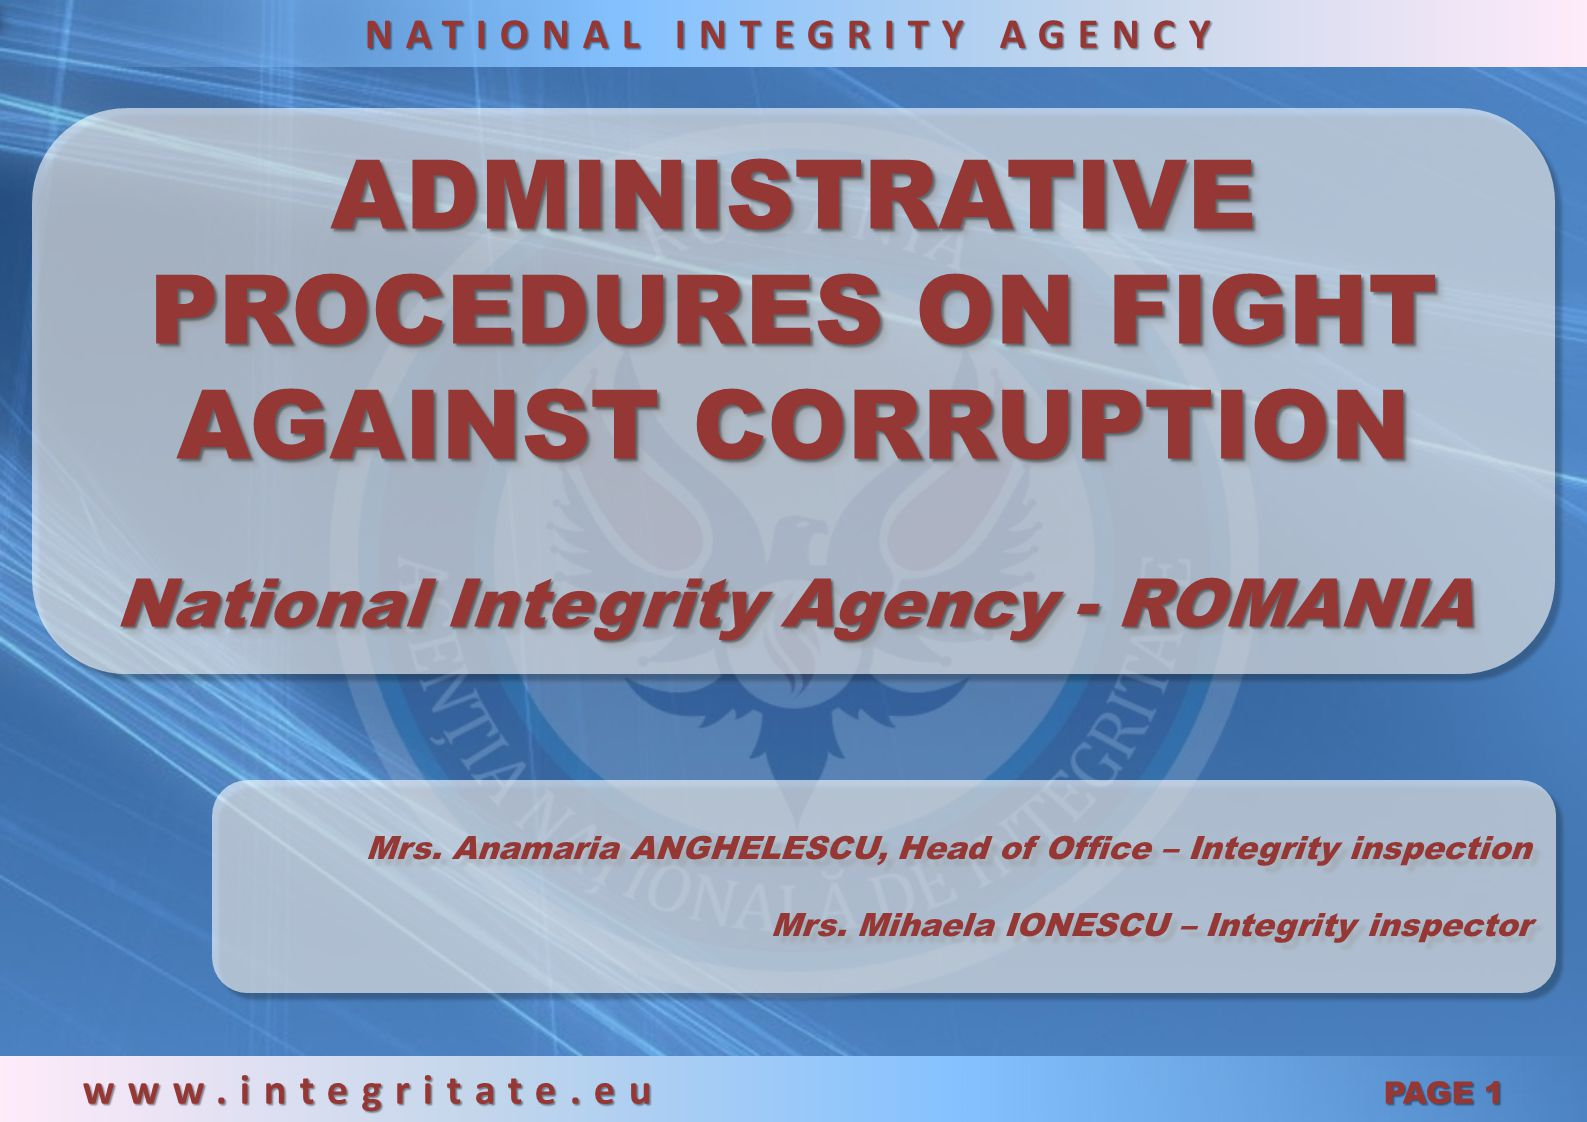 ADMINISTRATIVE PROCEDURES ON FIGHT AGAINST CORRUPTION National Integrity Agency - ROMANIA ADMINISTRATIVE PROCEDURES ON FIGHT AGAINST CORRUPTION National Integrity Agency - ROMANIA www.integritate.eu PAGE 1 NATIONAL INTEGRITY AGENCY Mrs.